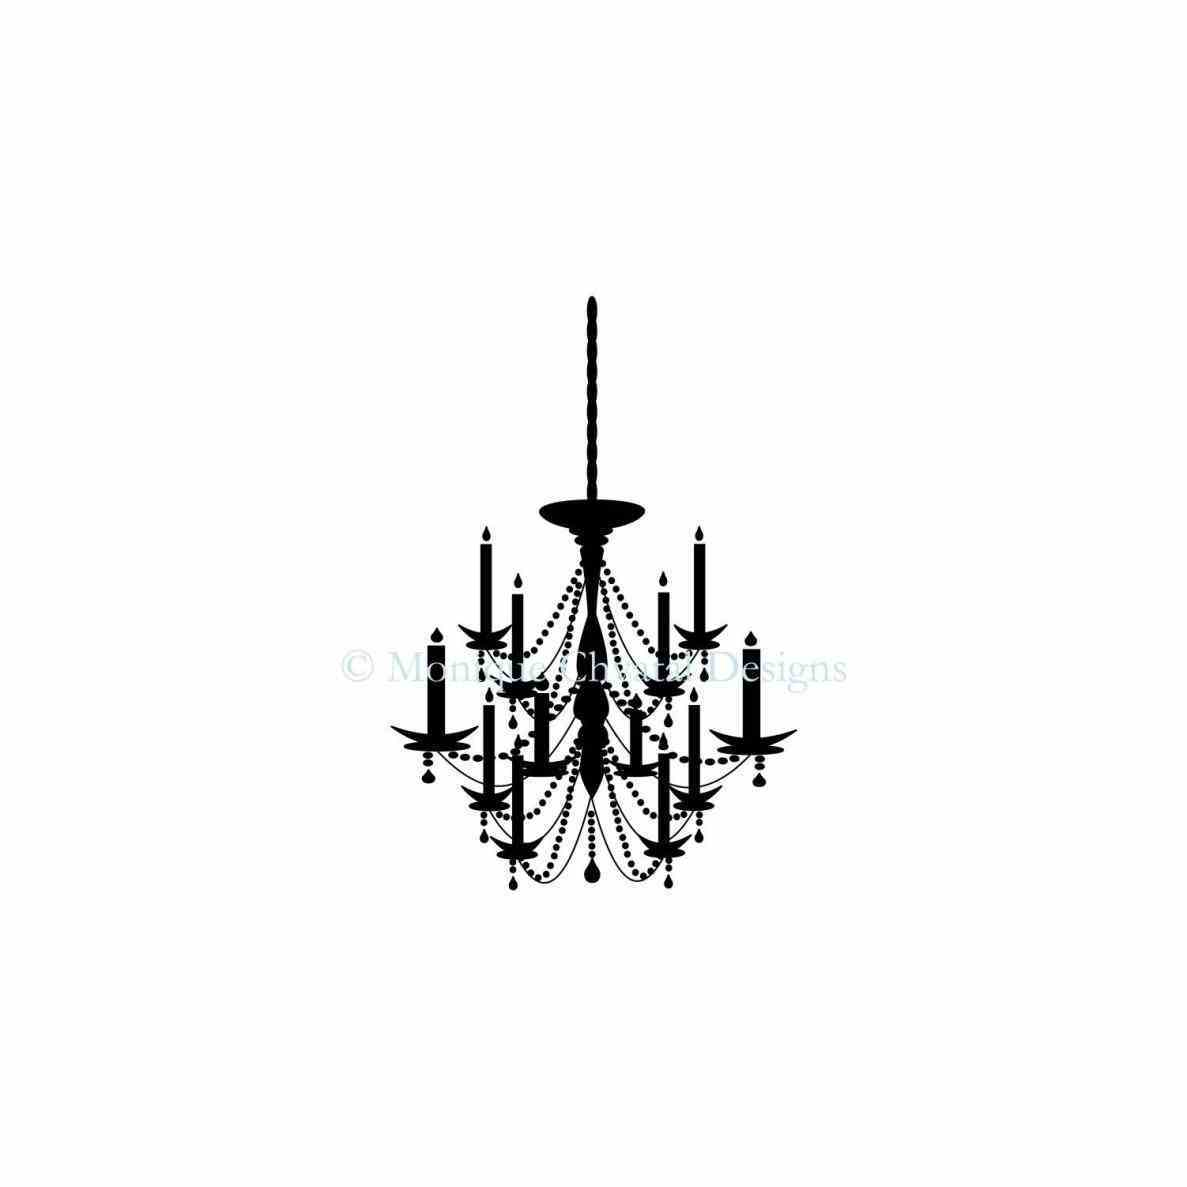 Chandelier clipart ceiling light. Free vector